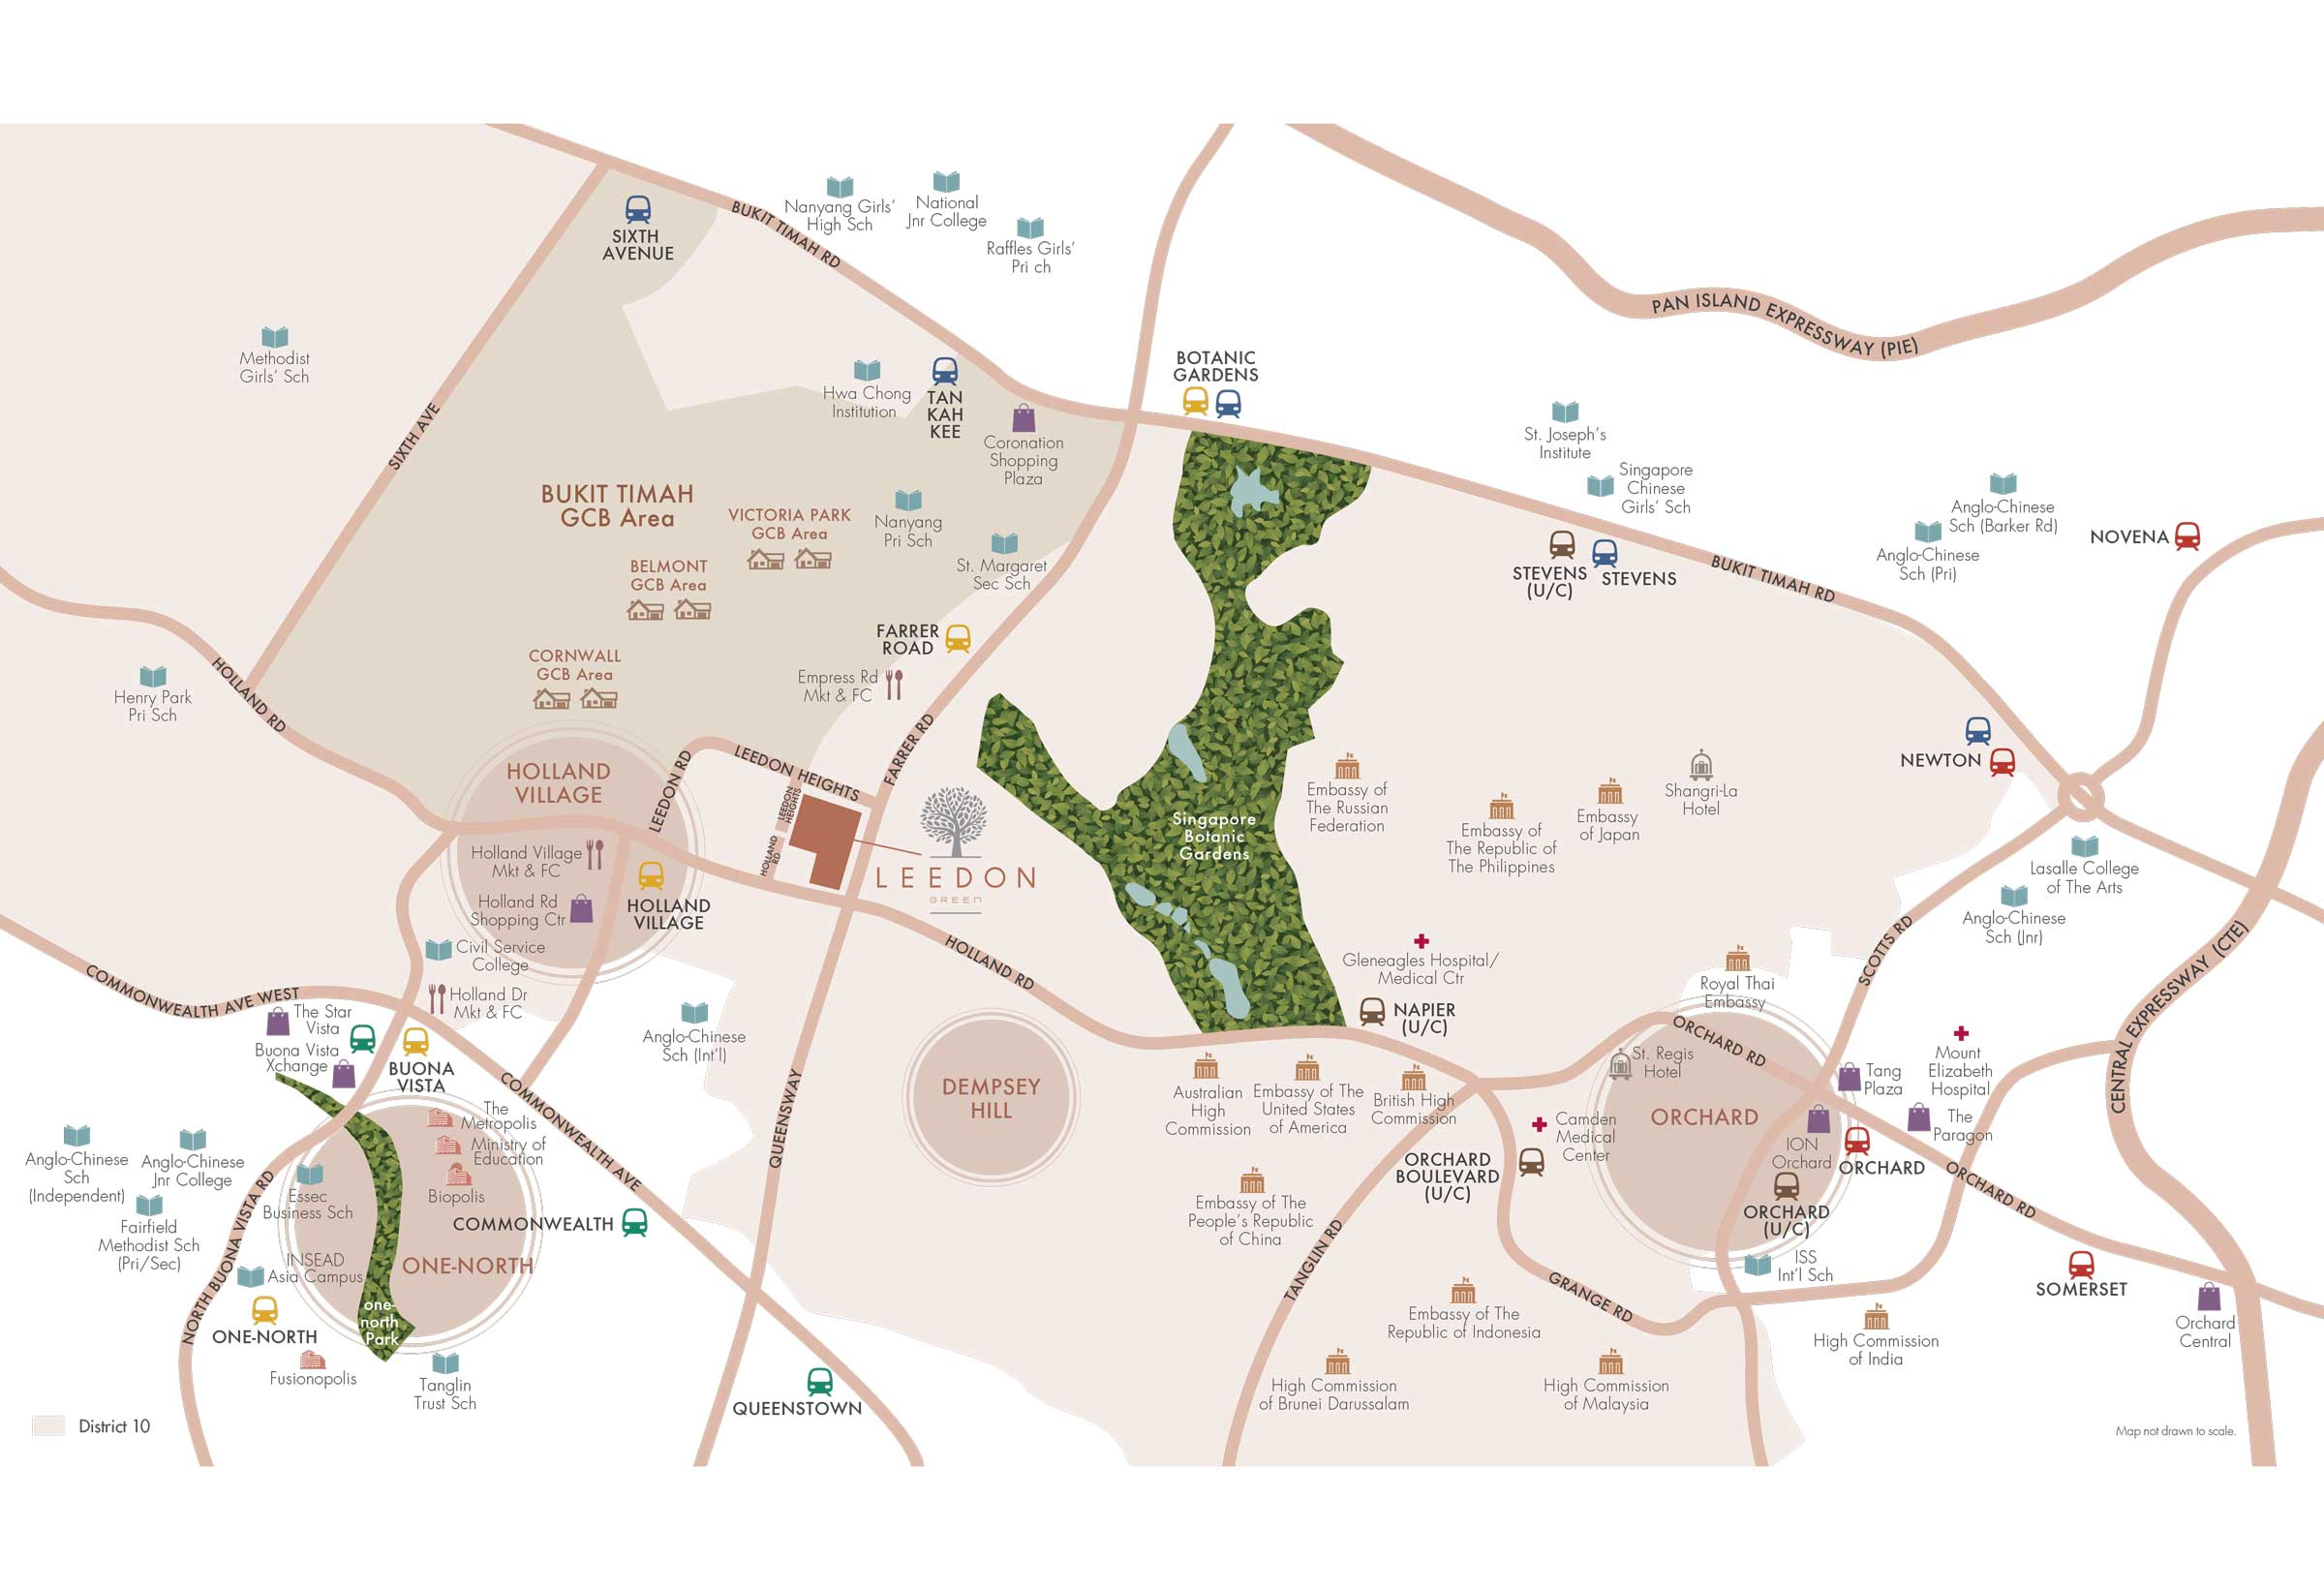 3 Orchard by the Park location map